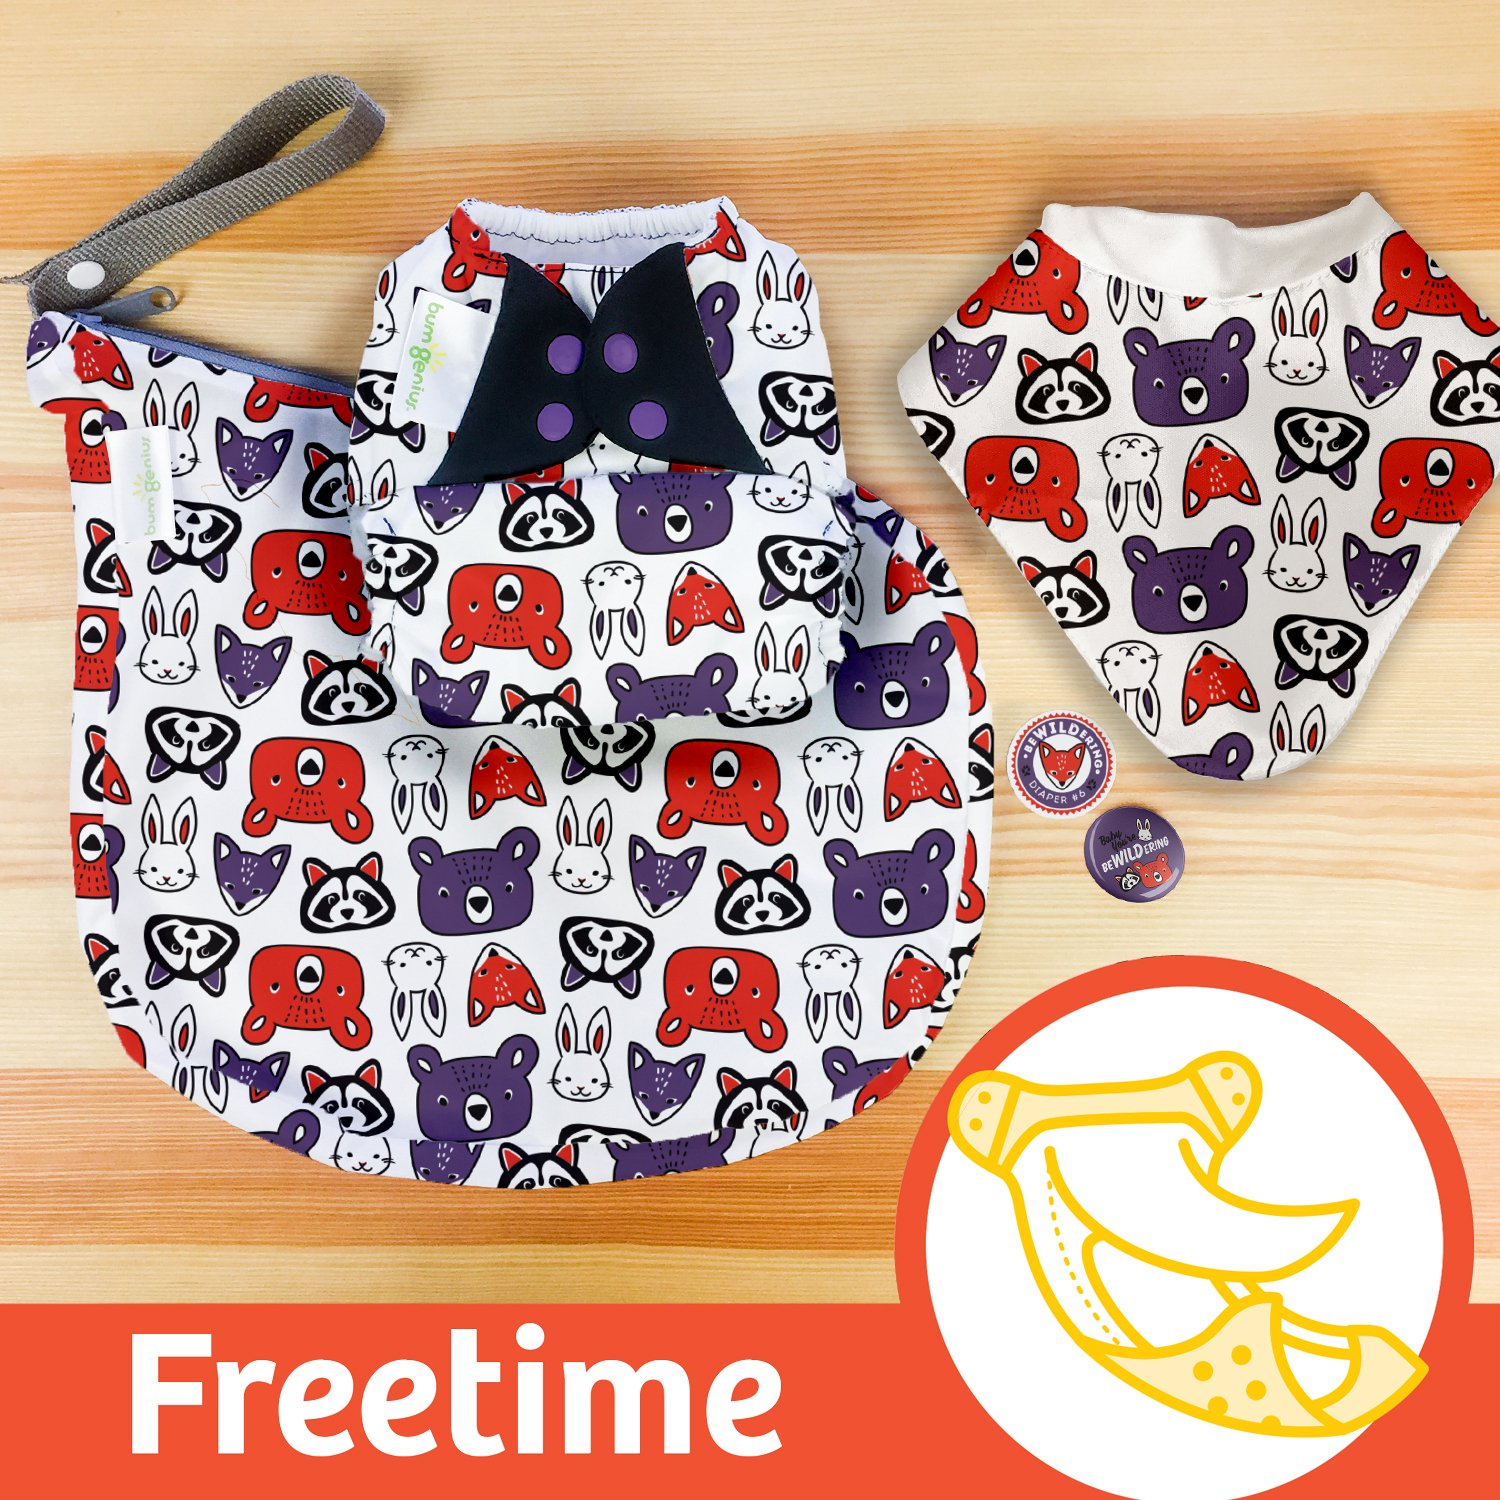 Doodles Collection: bumGenius Freetime All-in-One One-Size Snap Closure Cloth Diaper (beWILDering)